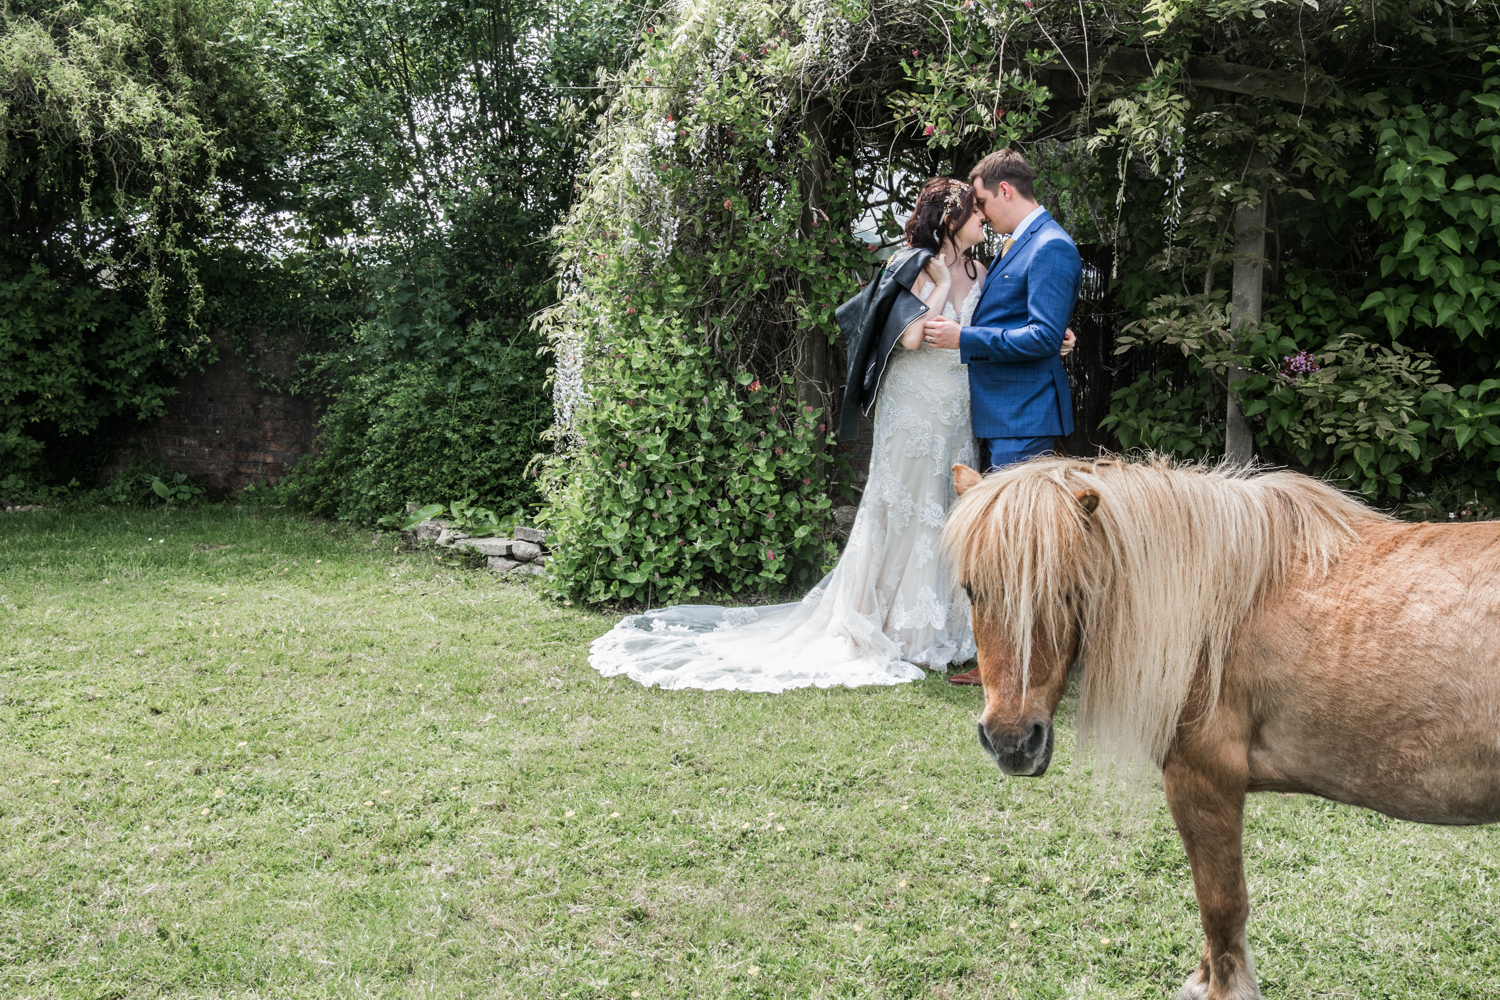 Gower Horses and Bride Wedding Photography in Swansea